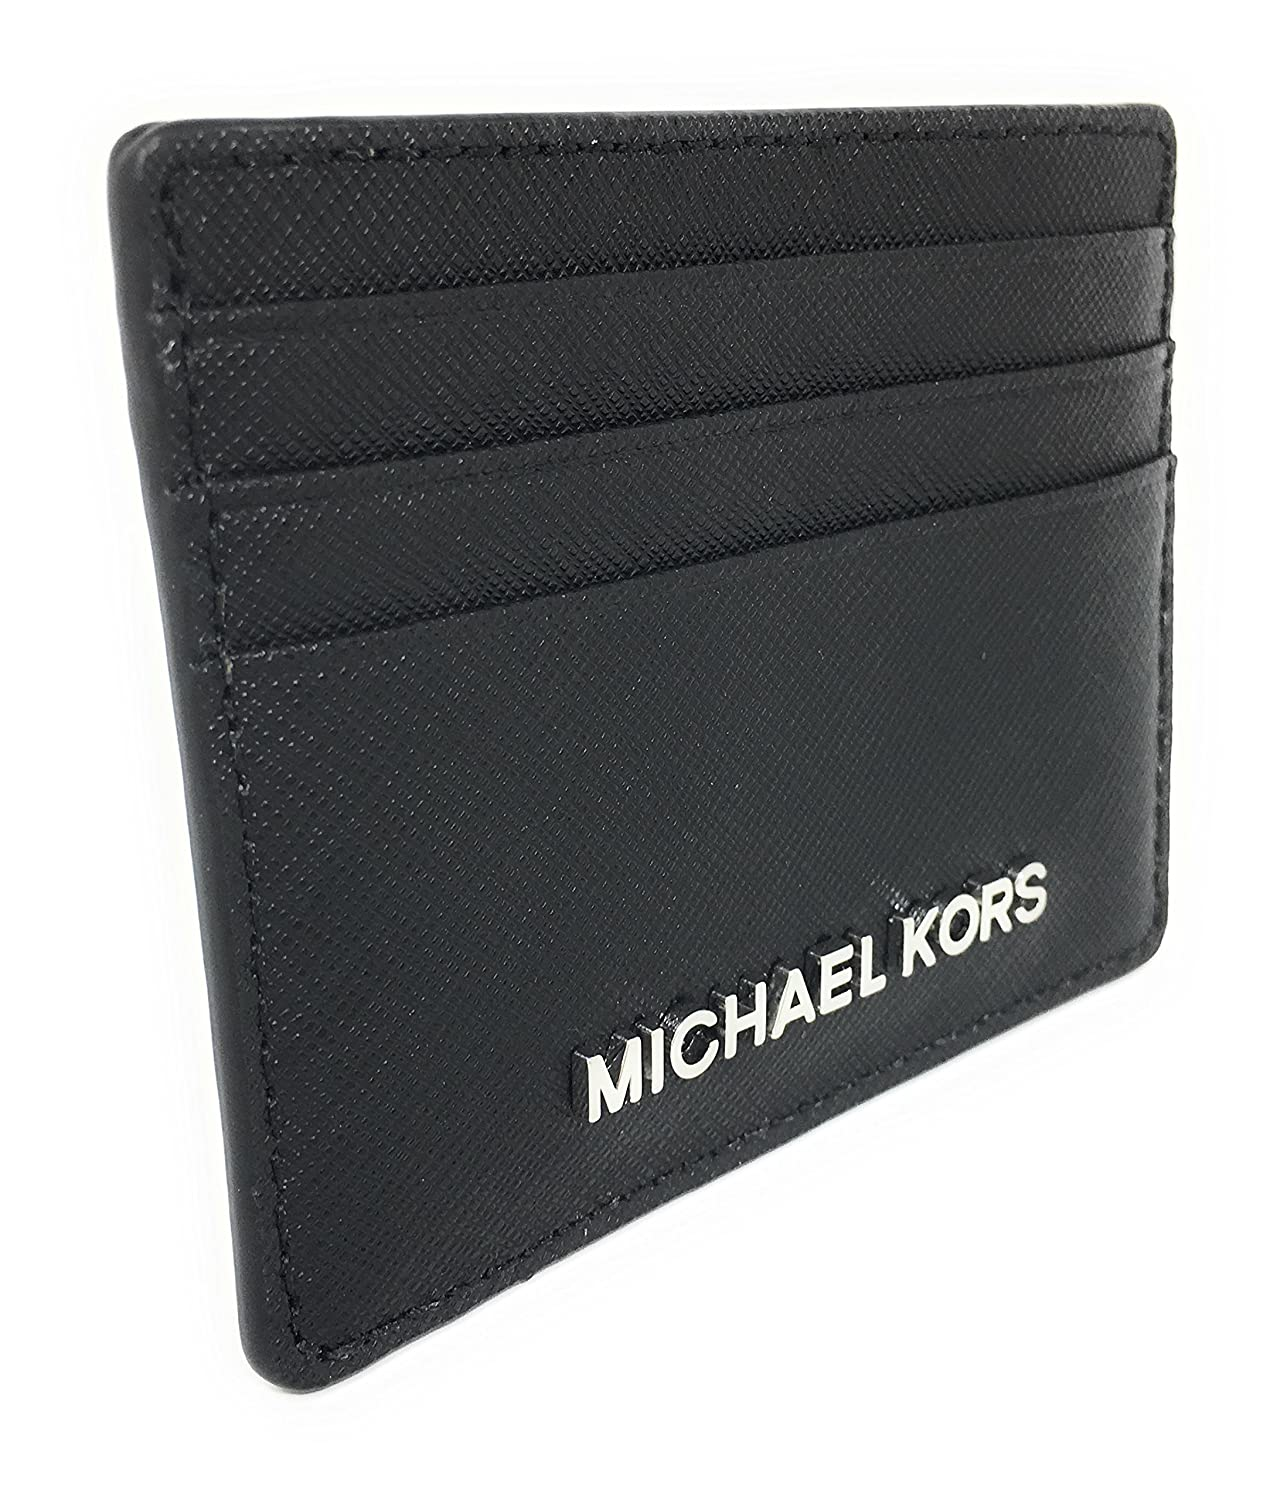 5e0016cce911 Michael Kors Jet Set Travel Large Saffiano Leather Card Holder (Black with  Silver Hardware) at Amazon Women s Clothing store